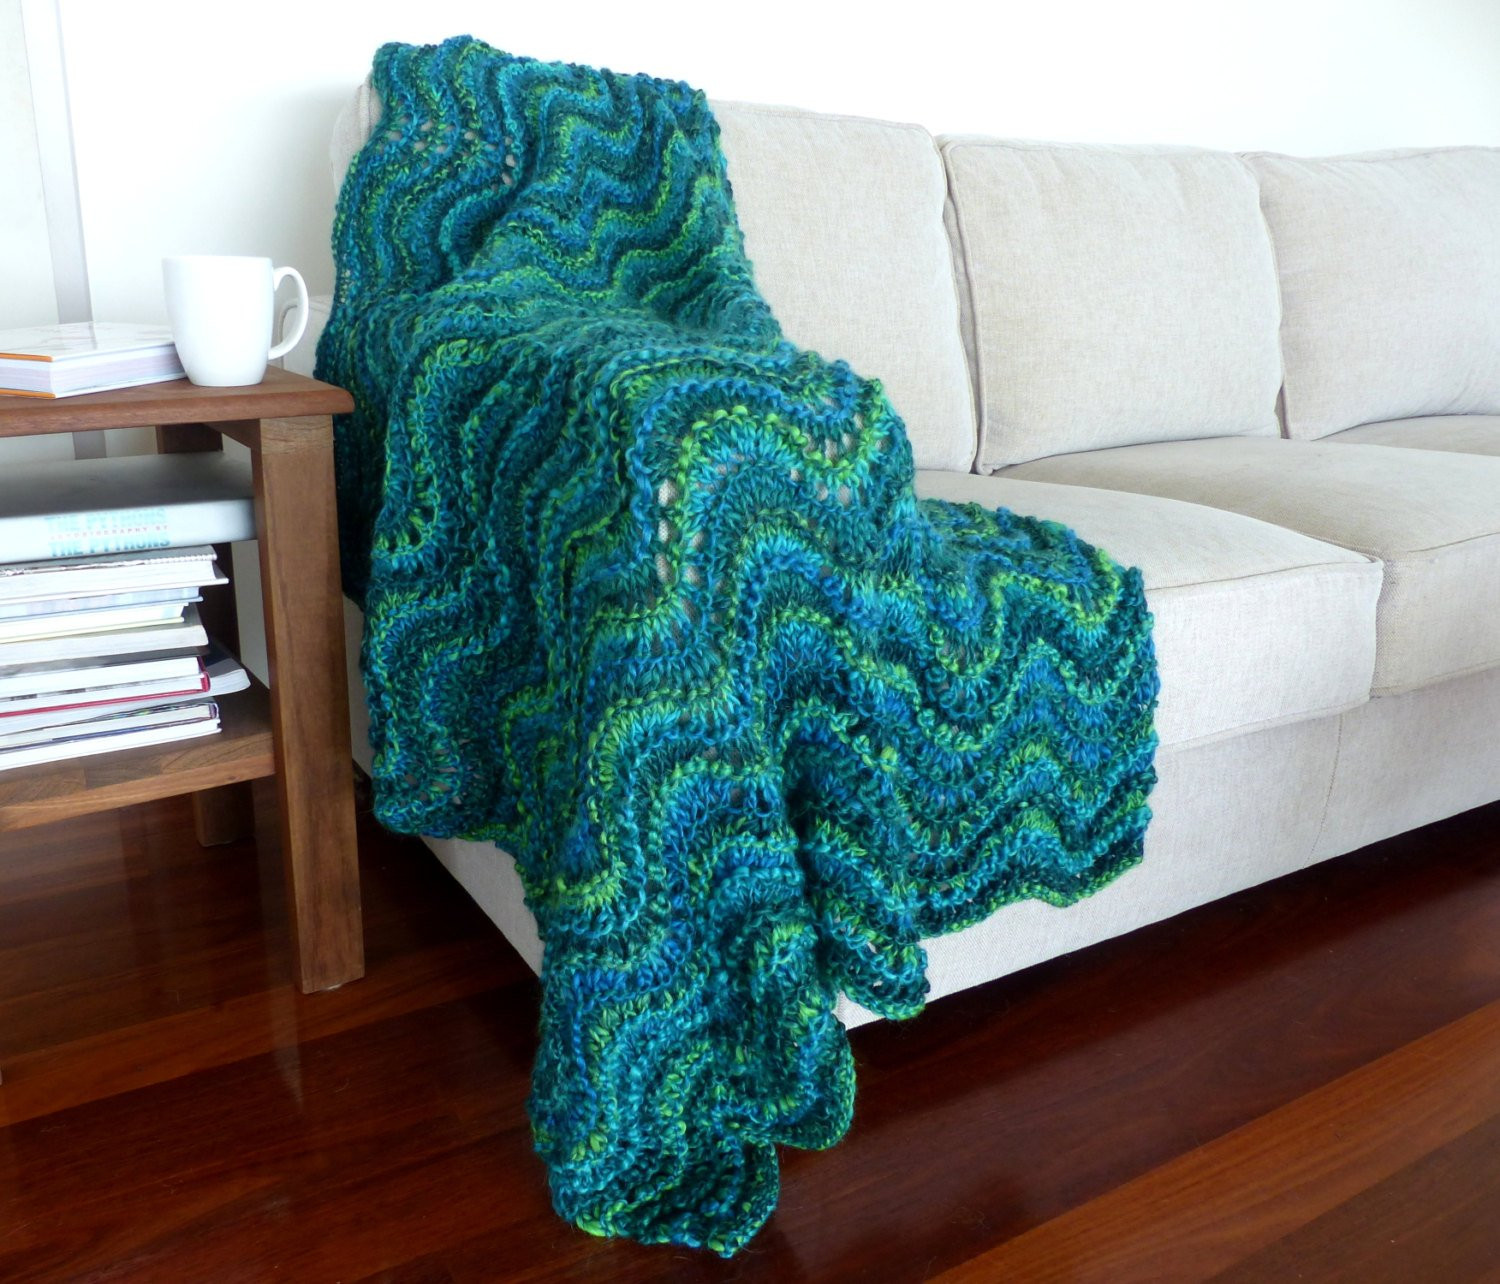 Knit Throw Blanket Best Of Blue Throw Blanket Chunky Knit Blanket Green Knit Throw Of New 48 Pictures Knit Throw Blanket